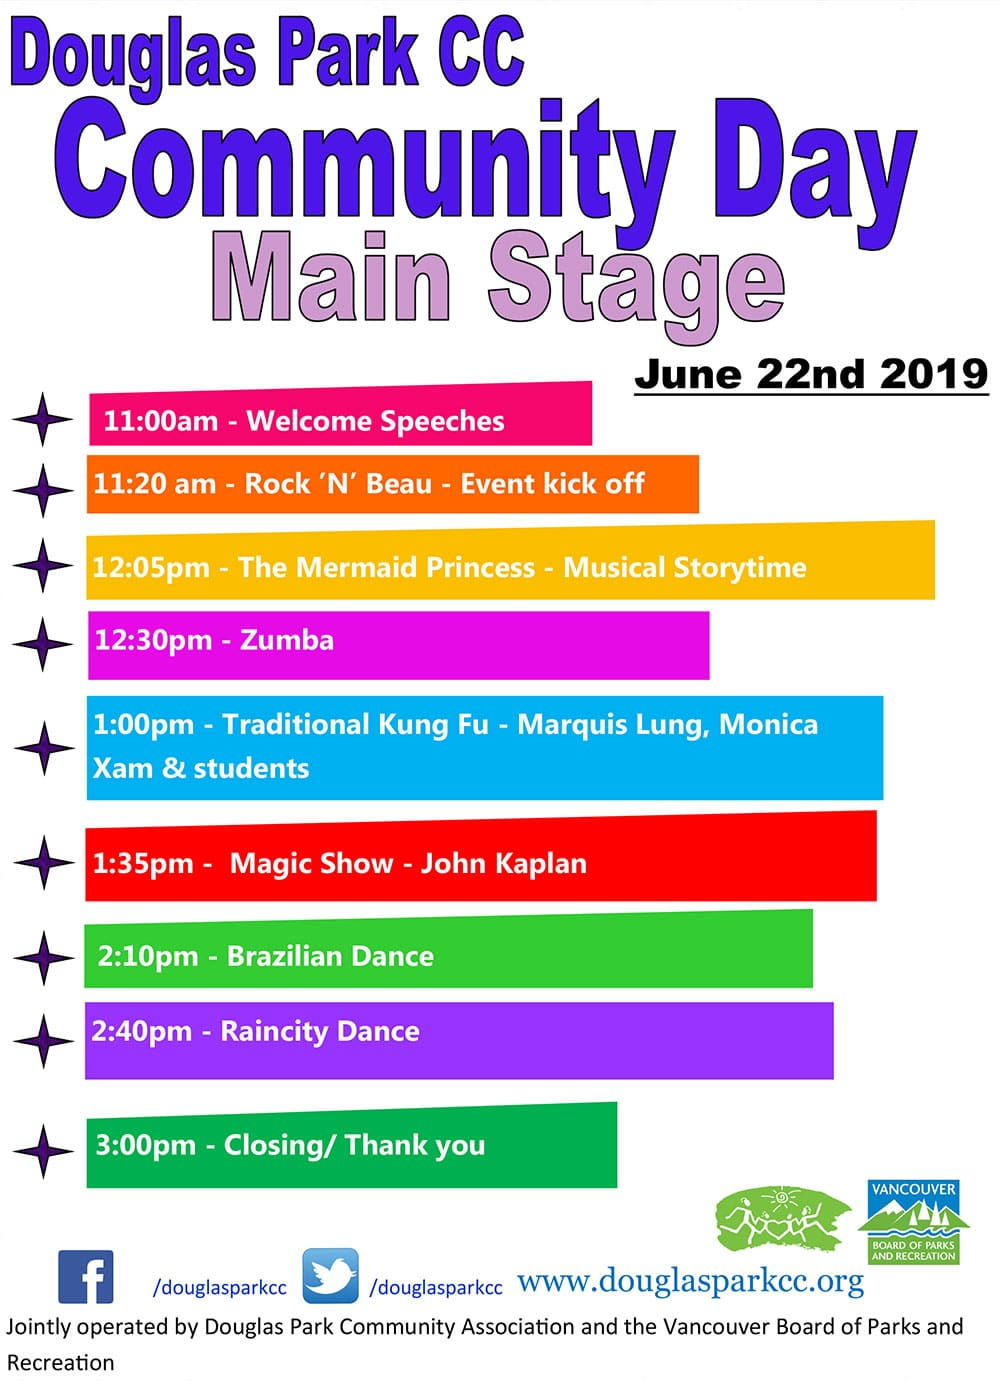 Community Day Performanc Schedule11:00am -Welcome Speeches 11:20 am -Rock 'N' Beau -Event kick off 12:05pm -The Mermaid Princess -Musical Storytime 12:30pm -Zumba 1:00pm -Traditional Kung Fu and Lion Dance-Marquis Lung, Monica Xam & students 1:35pm -Magic Show -John Kaplan 2:10pm -Brazilian Dance 2:40pm -Rain City Dance 3:00pm -Closing/ Thank you